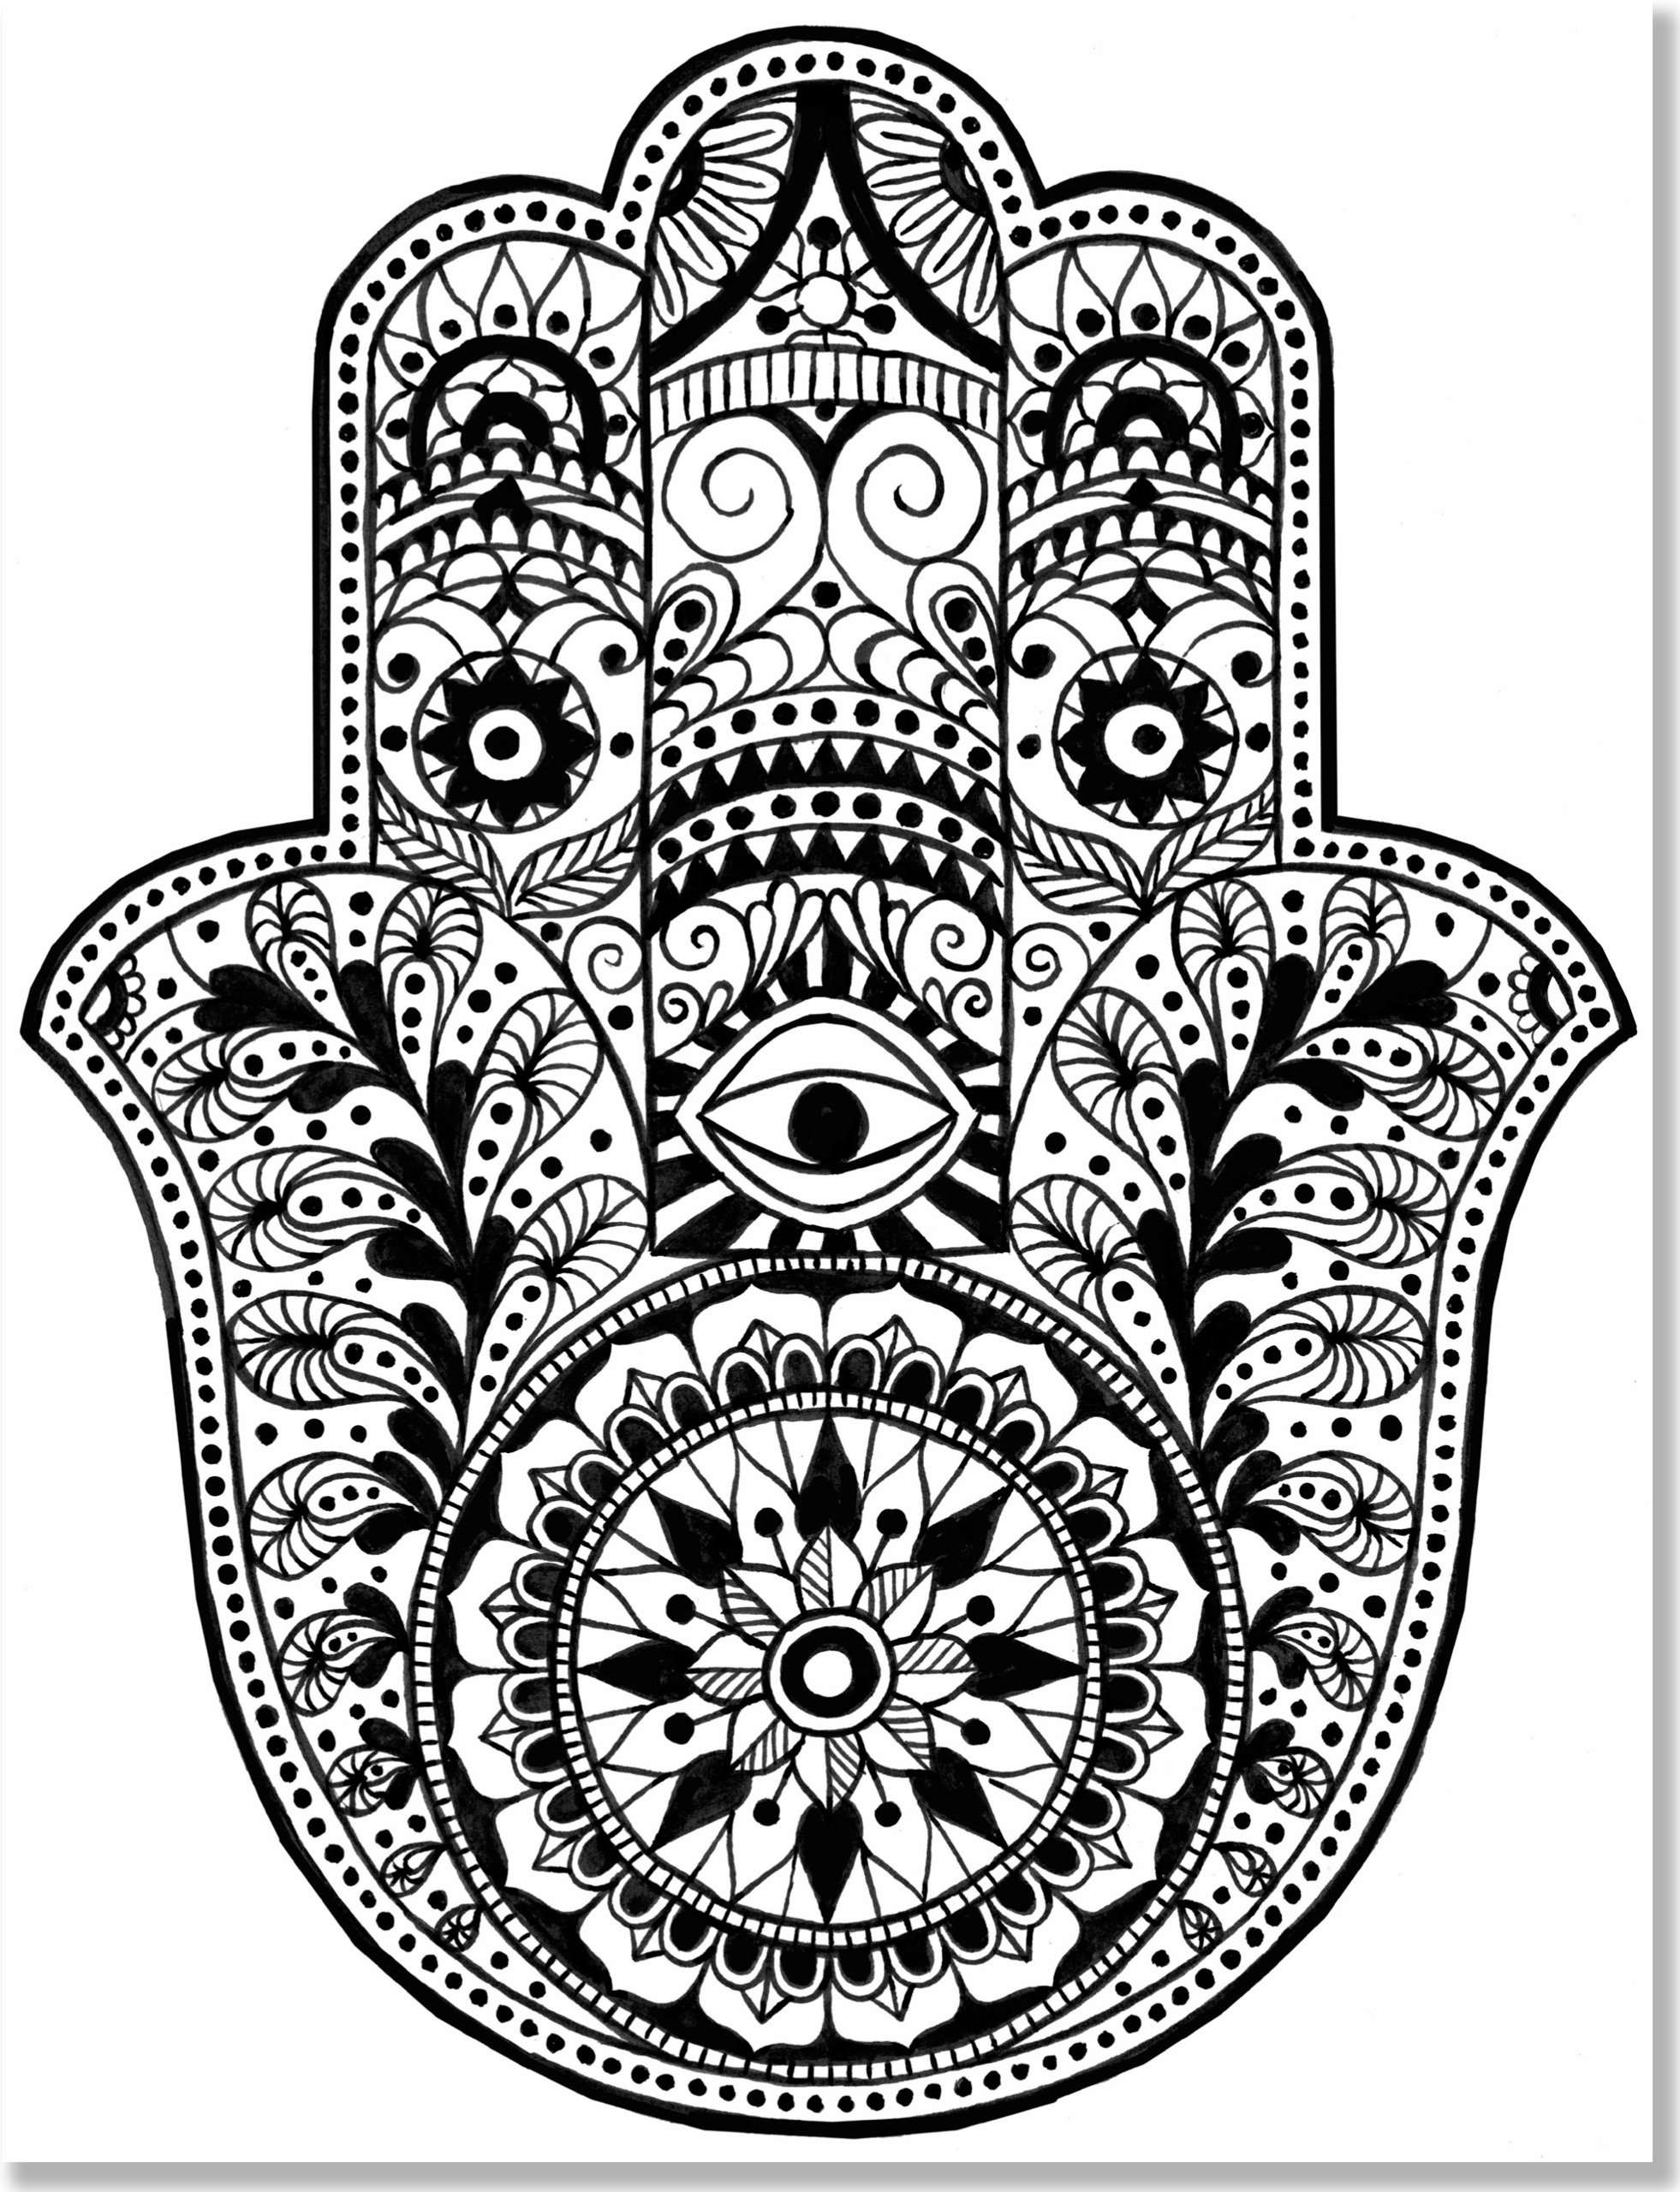 Free online printable adult coloring pages - Amazoncom Mandala Designs Adult Coloring Book 31 Stress Relieving Designs Studio 9781441317445 Peter Pauper Press Books